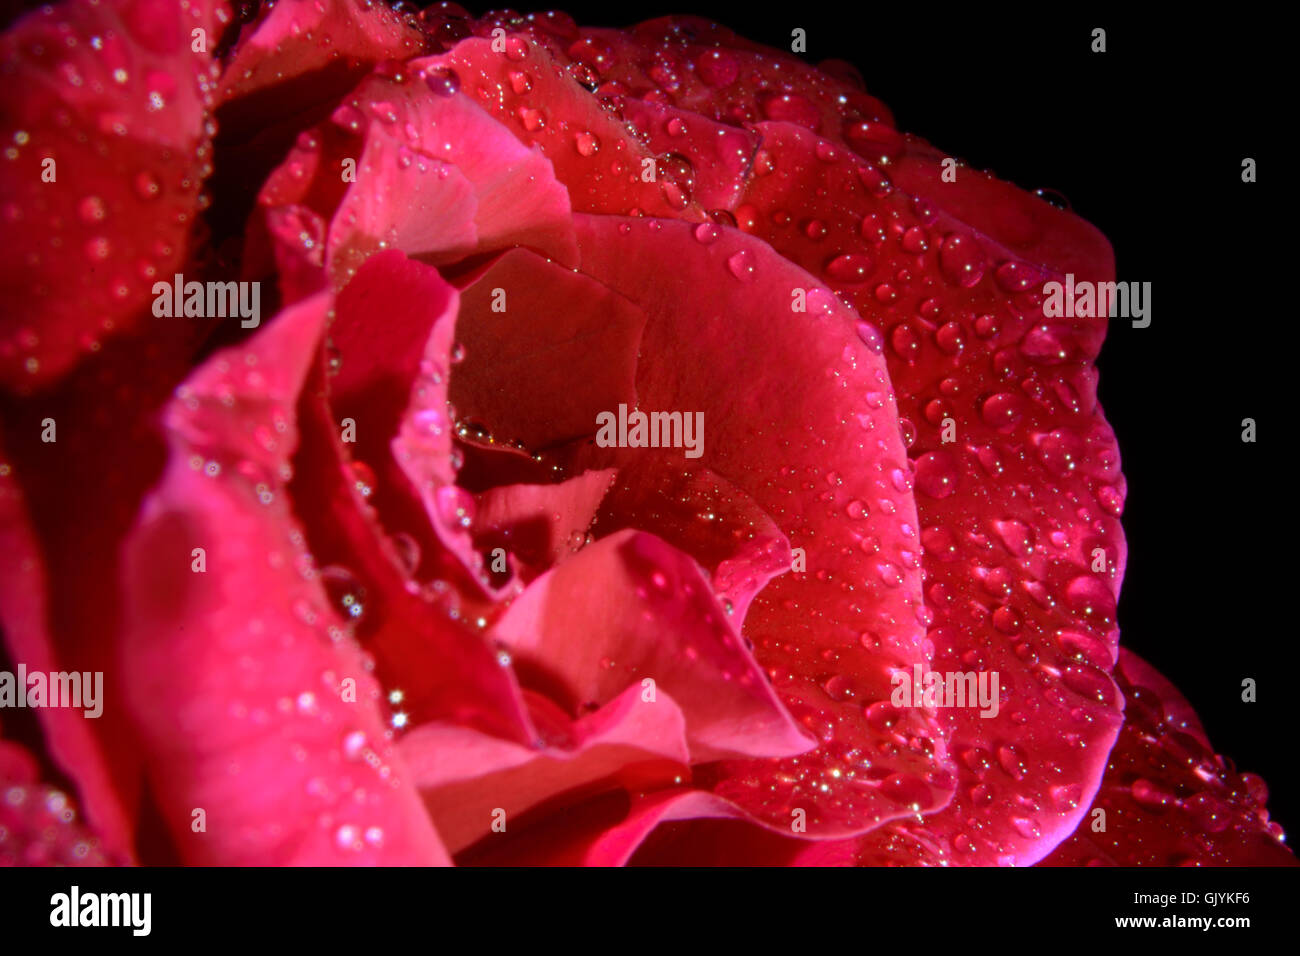 Close-up Single Red Rose with Water droplets on Black Background - Stock Image